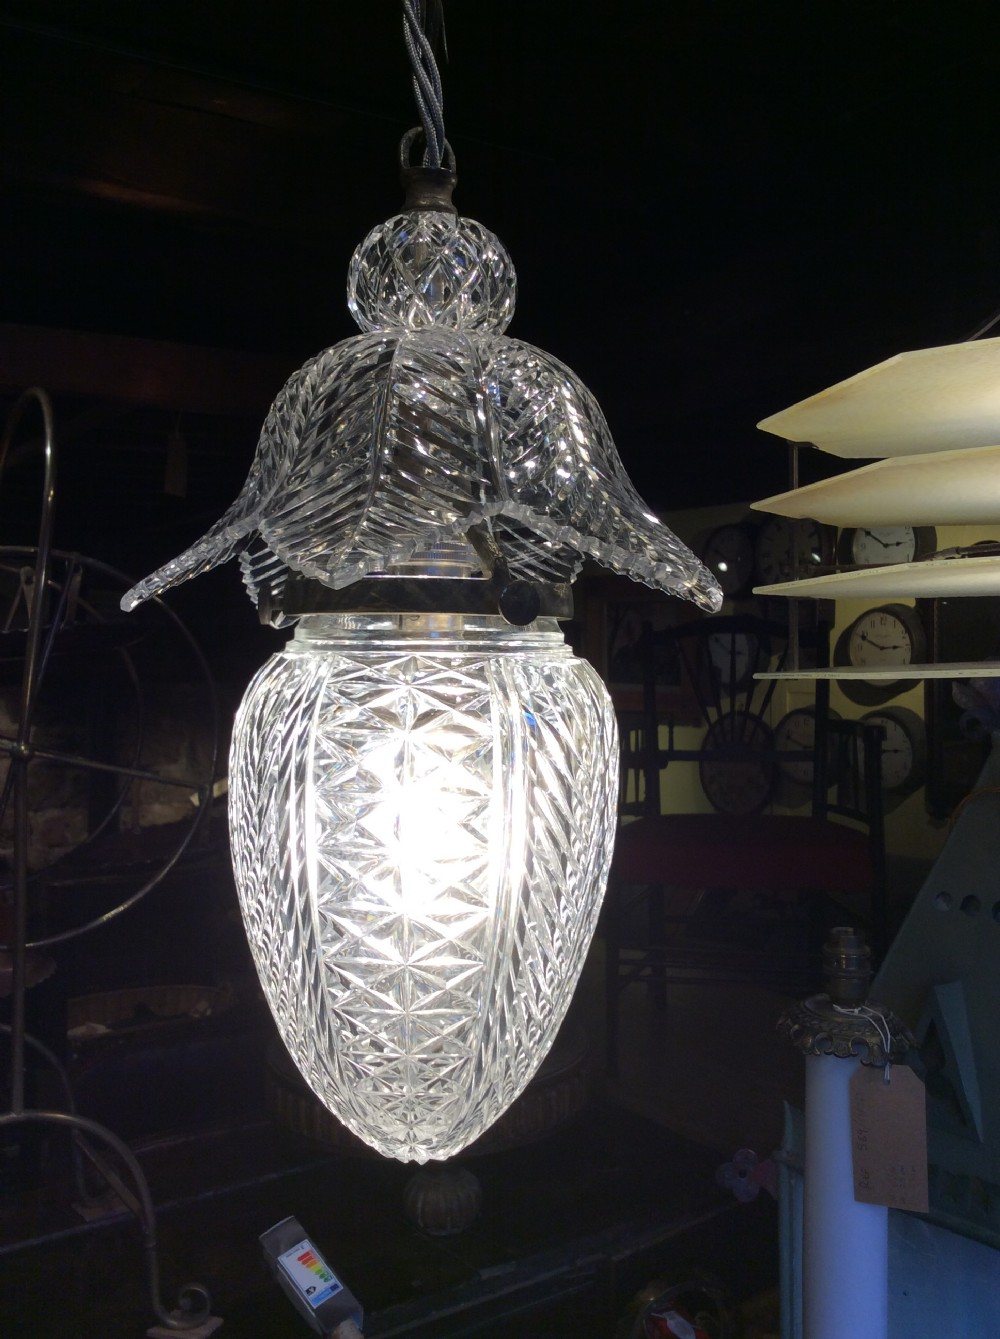 19thc cut glass pendant light